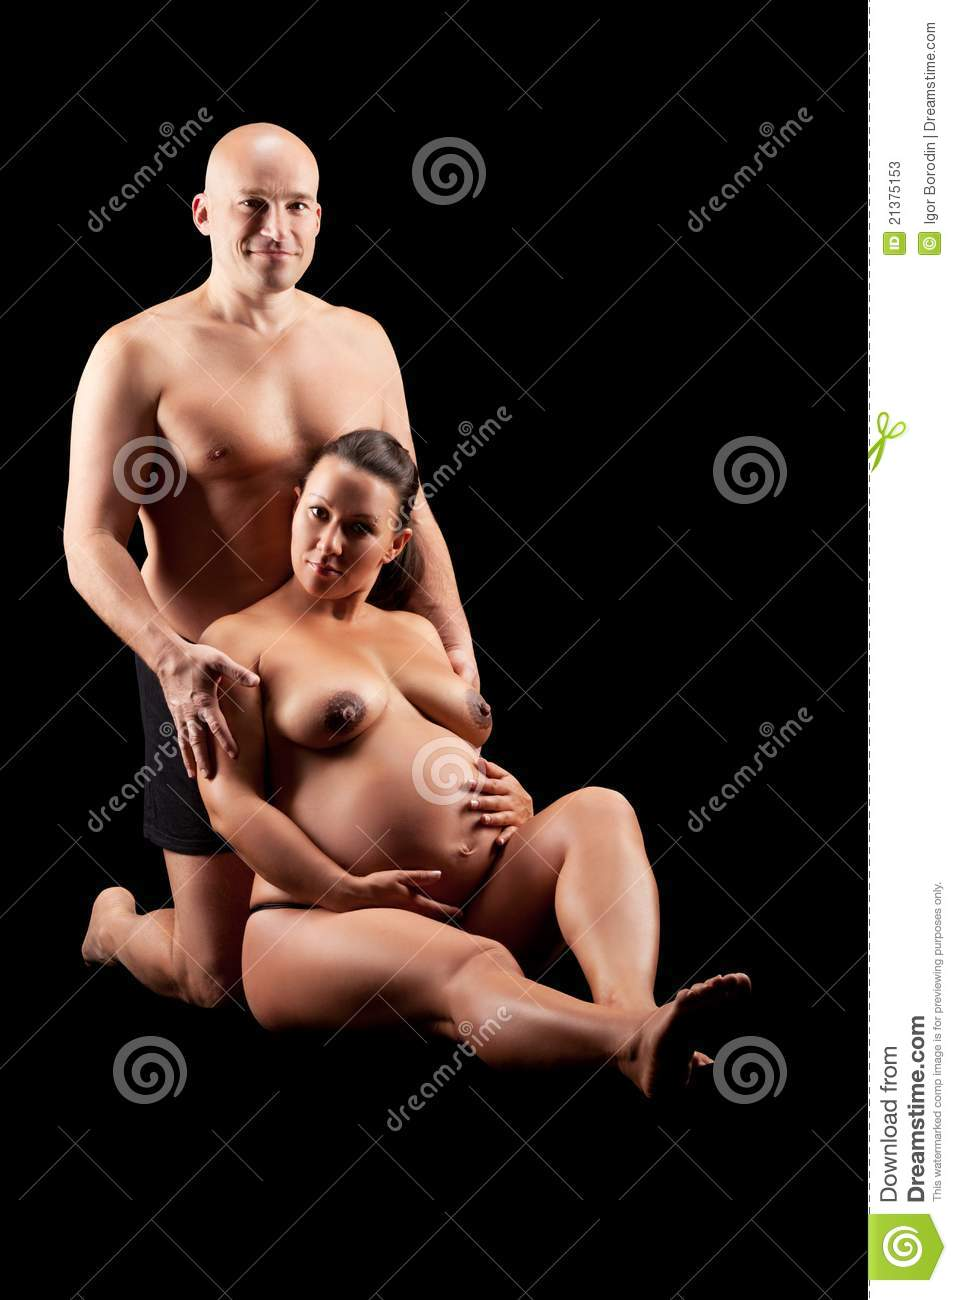 Nude of husband pregnant wife